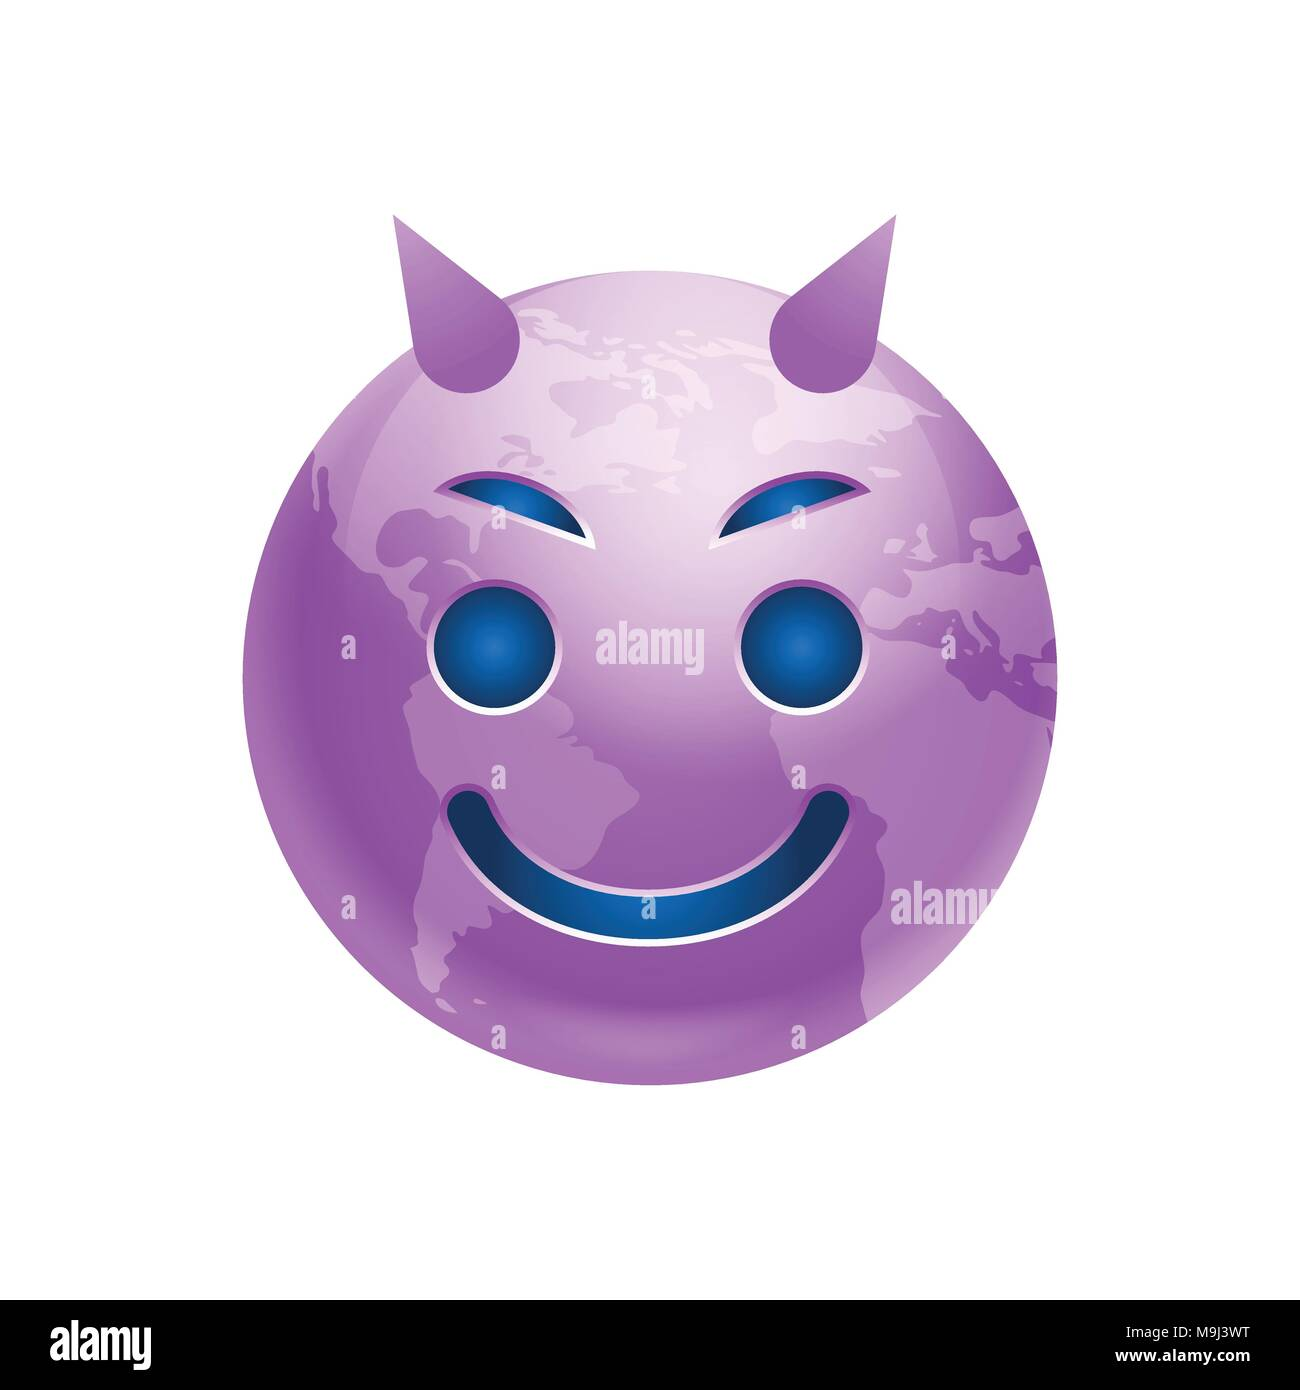 Image result for emotion icon devil pics